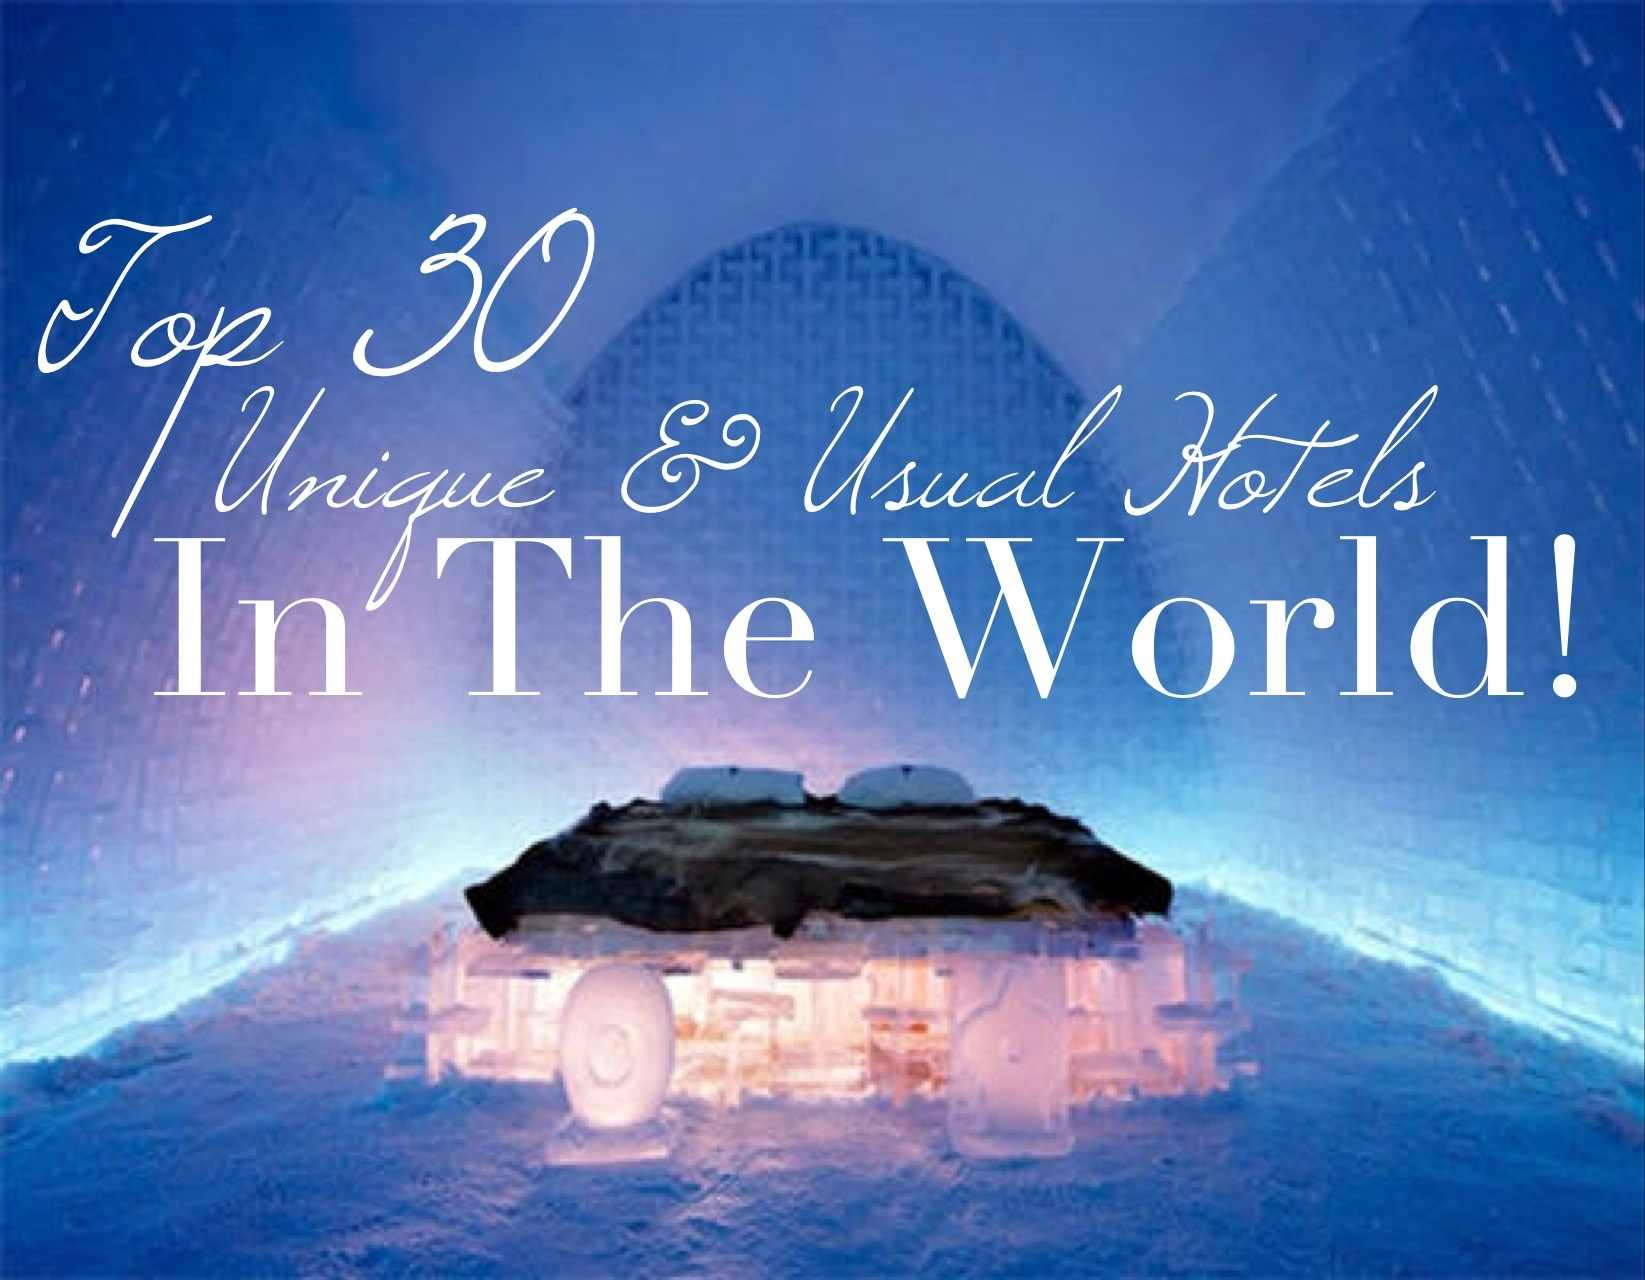 Top 30 Unique & Unusual Hotels In The World